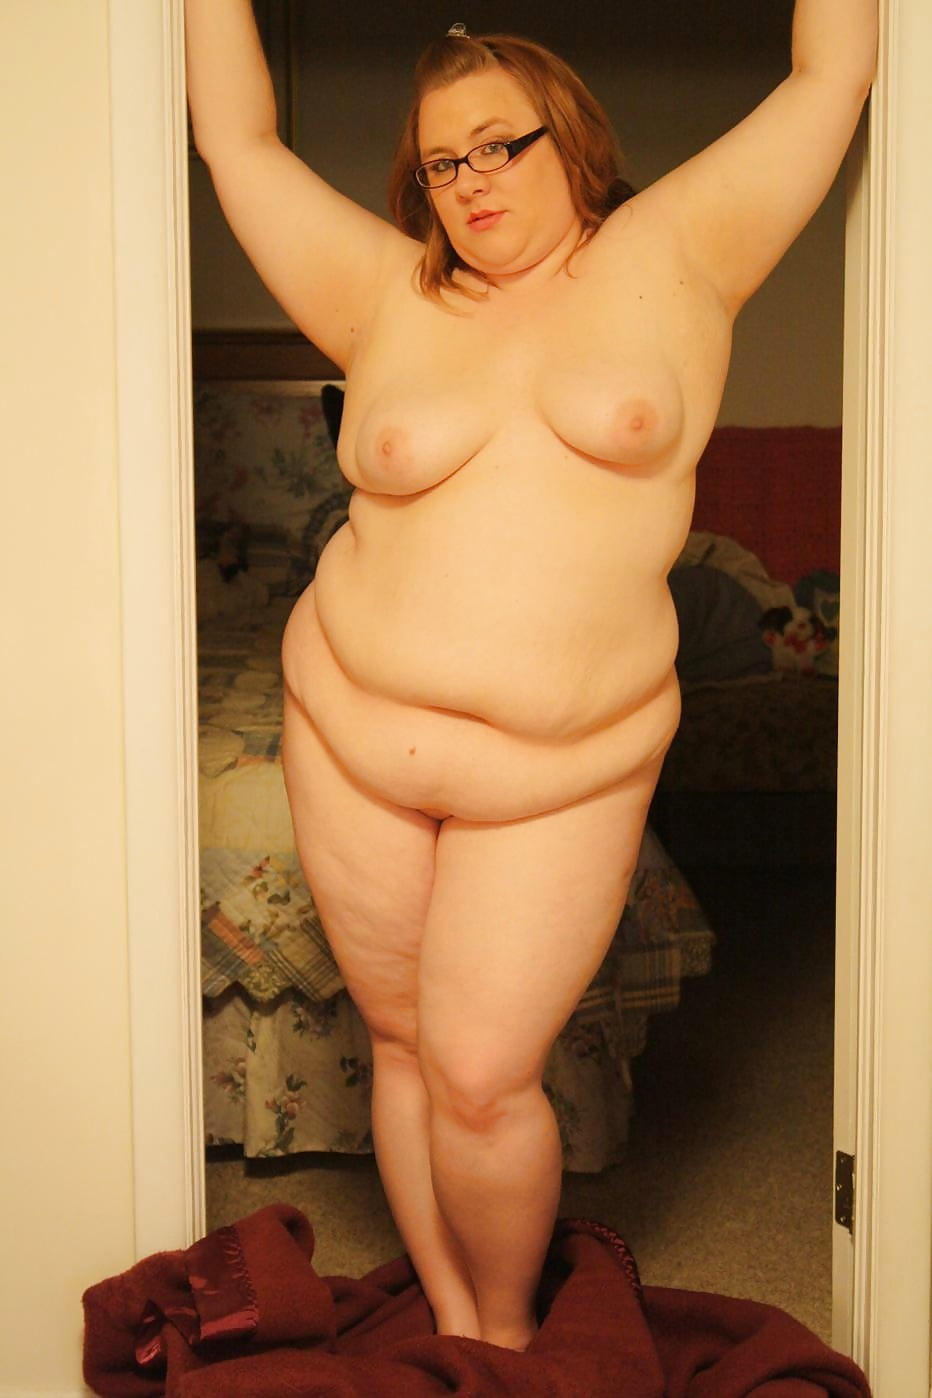 Fat nude girl photo, sexy bitches squirt bukkake